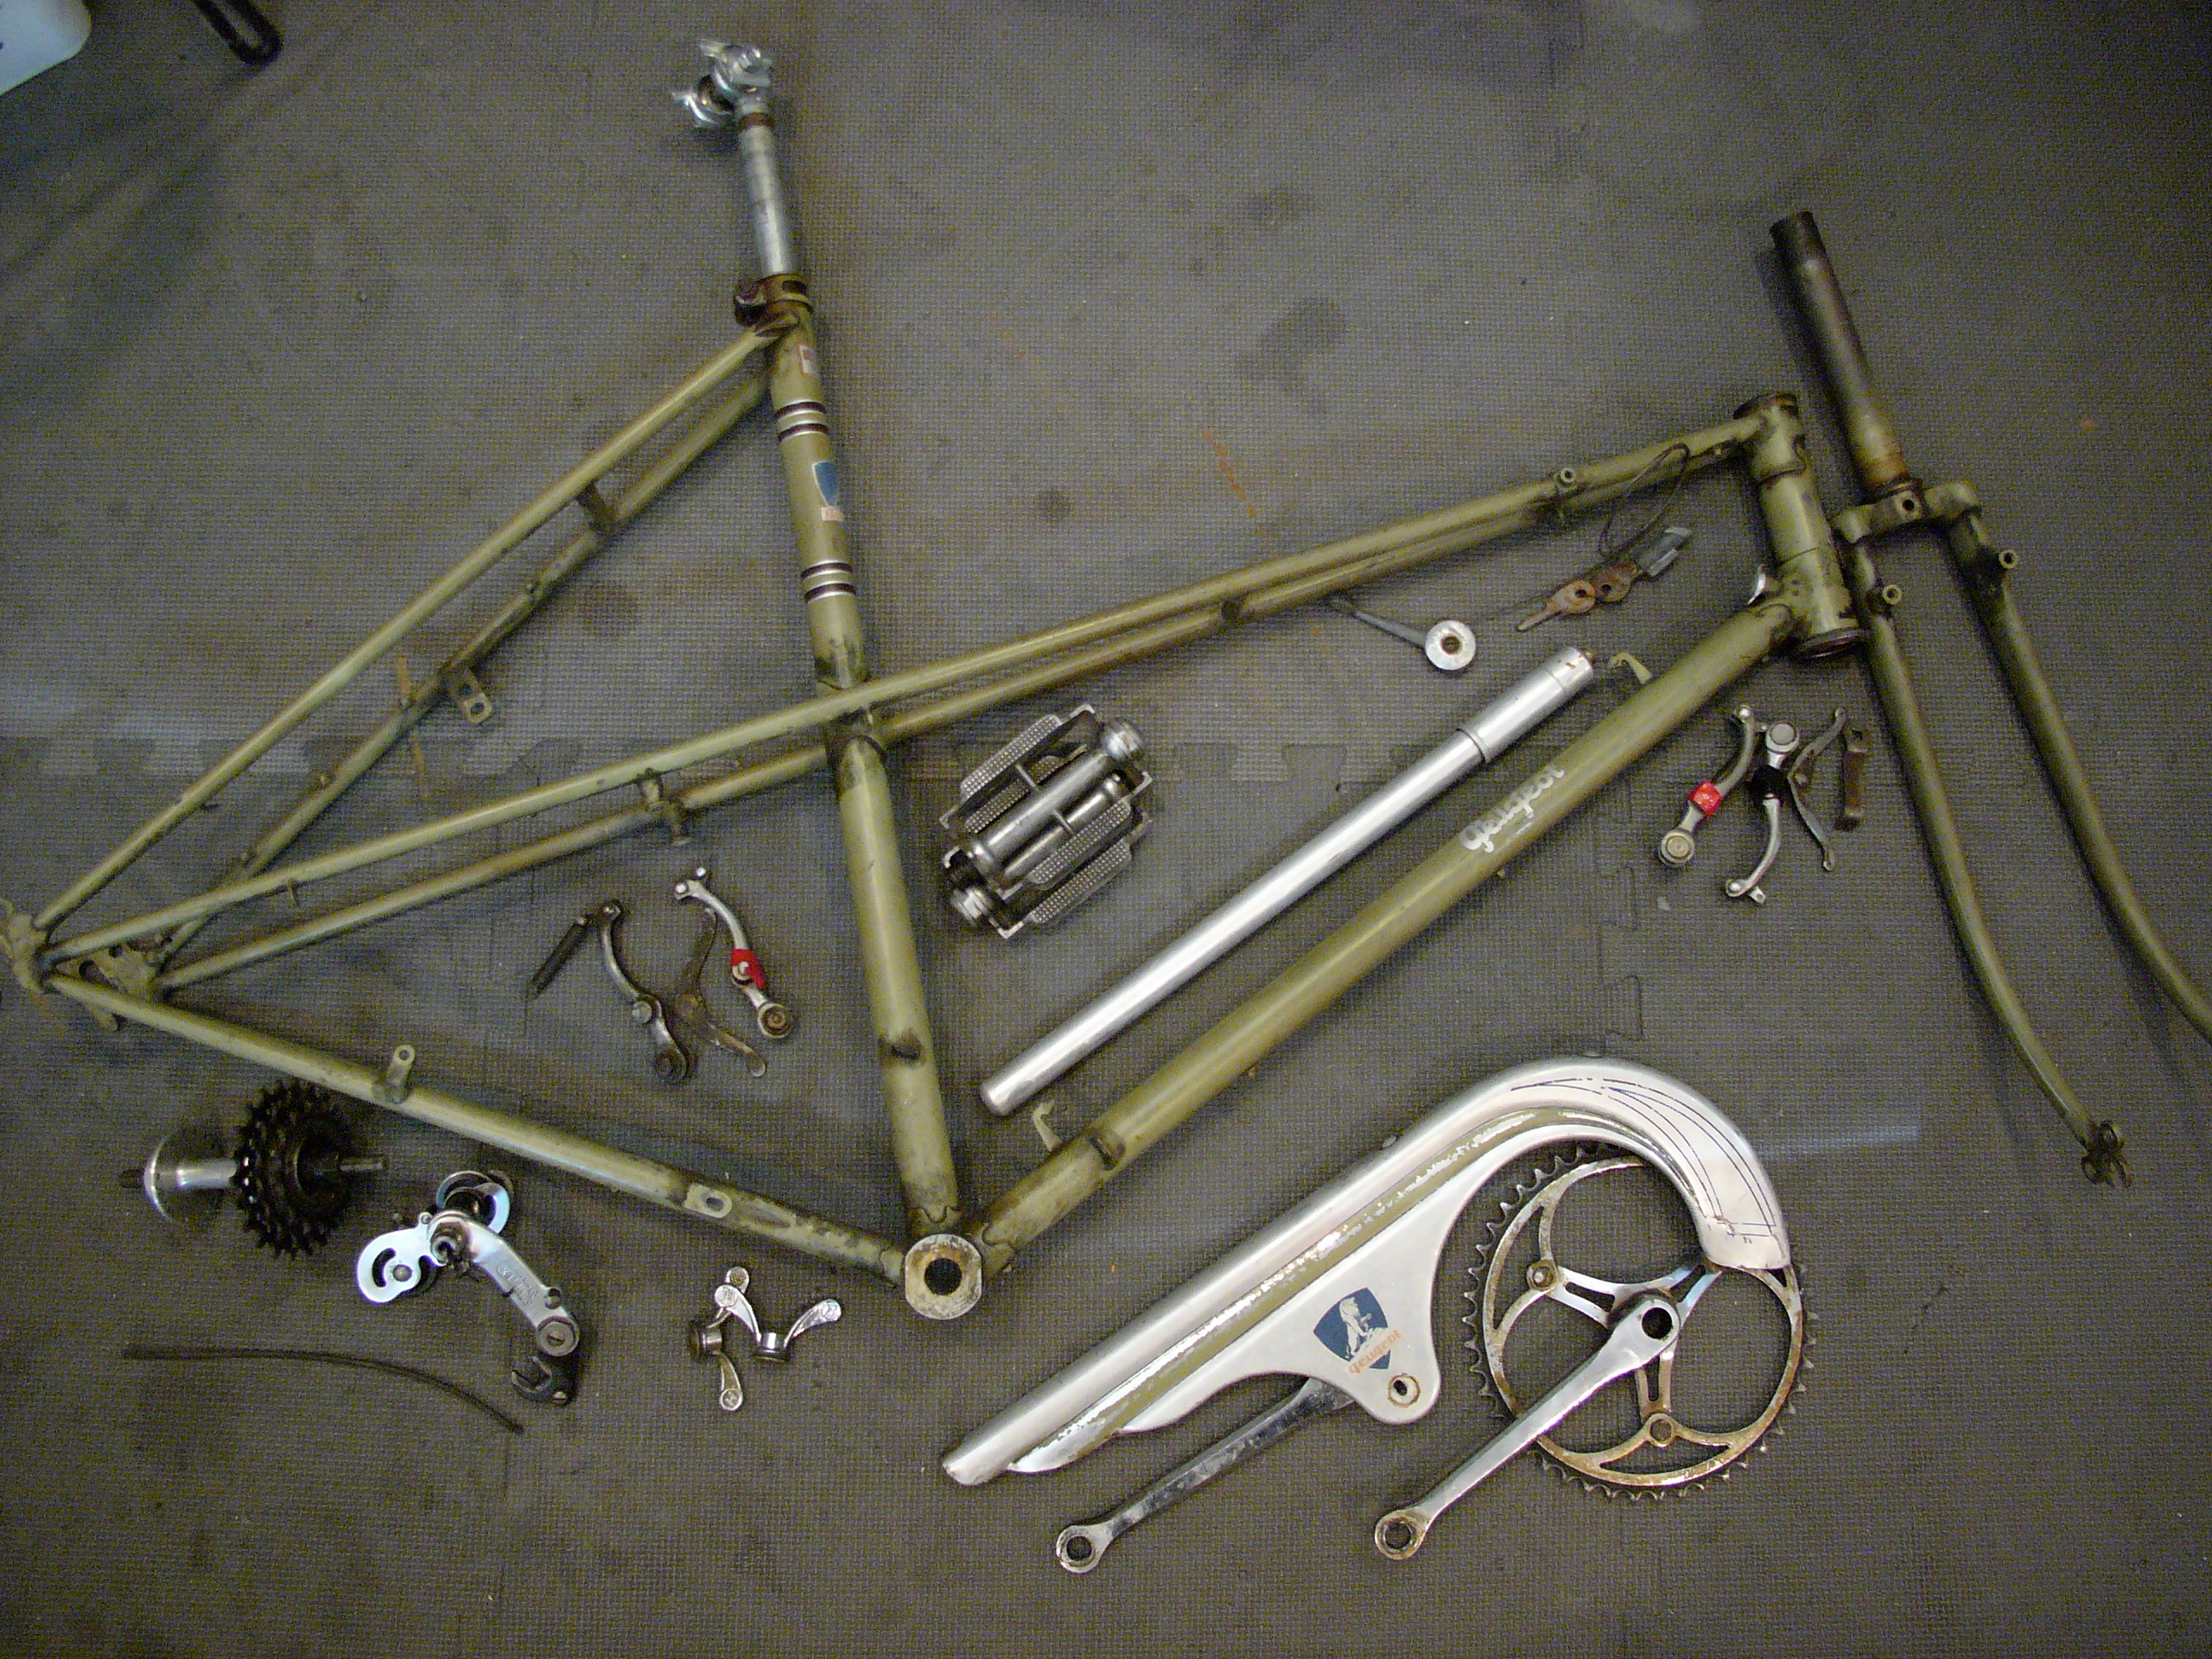 peugeot vintage bicycle | restoring vintage bicycles from the hand